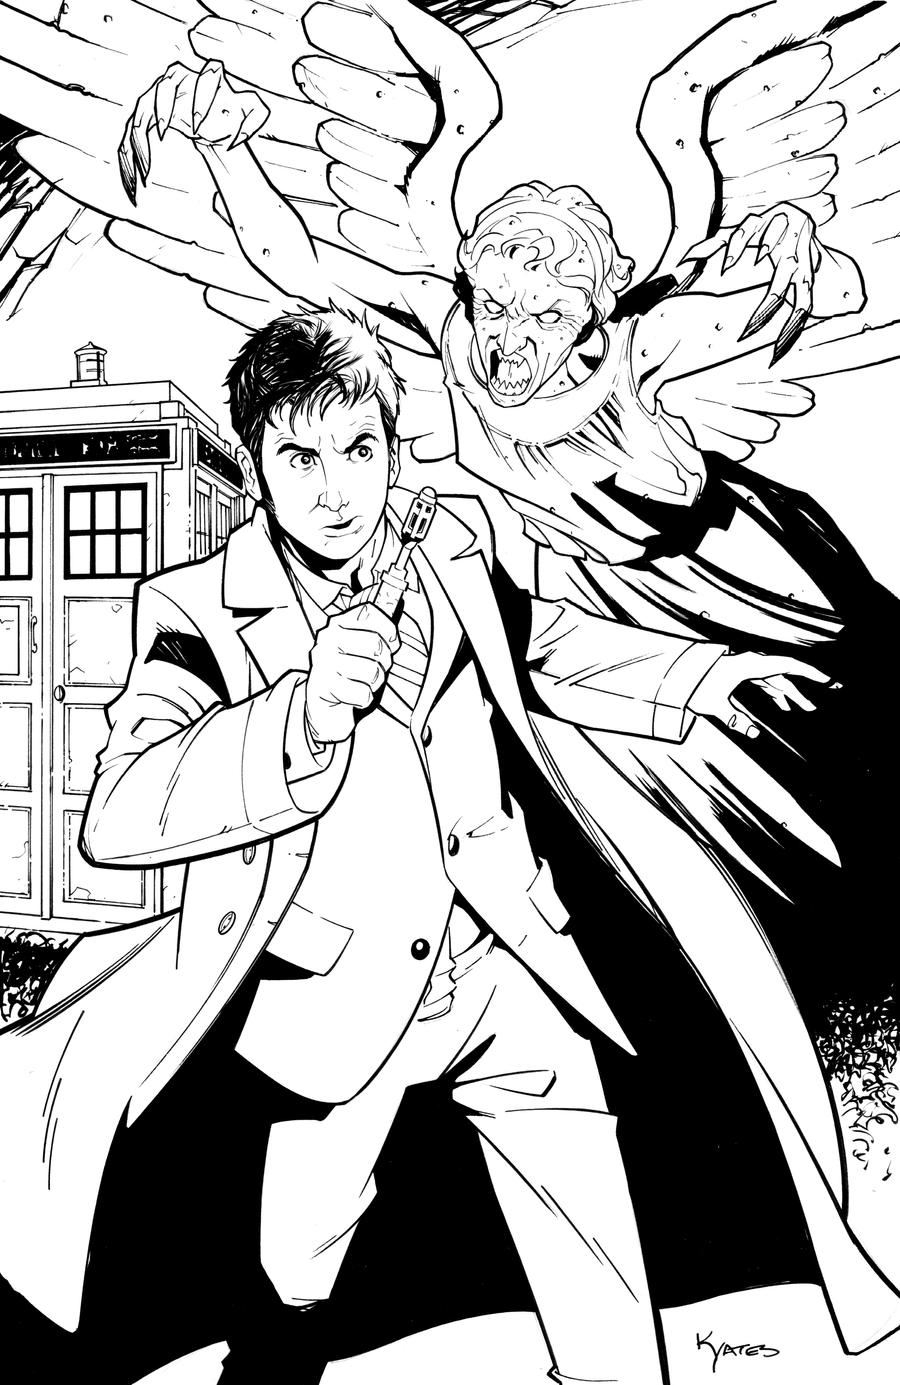 Weeping angel by kellyyates on deviantart for Doctor who coloring pages for adults